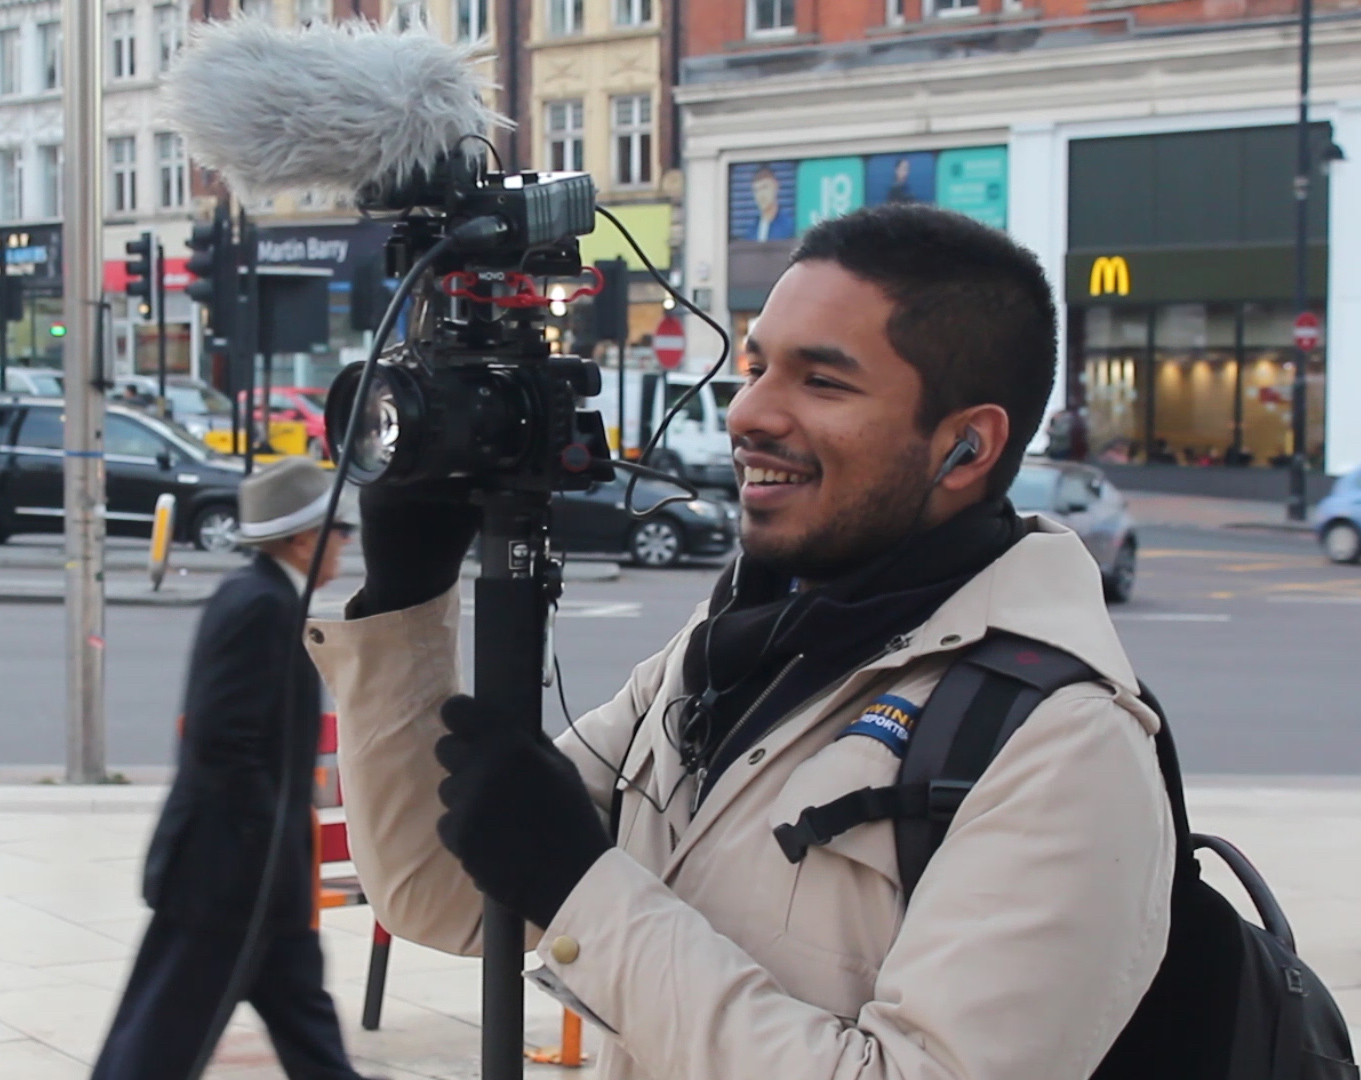 A WinkBall videographer filming